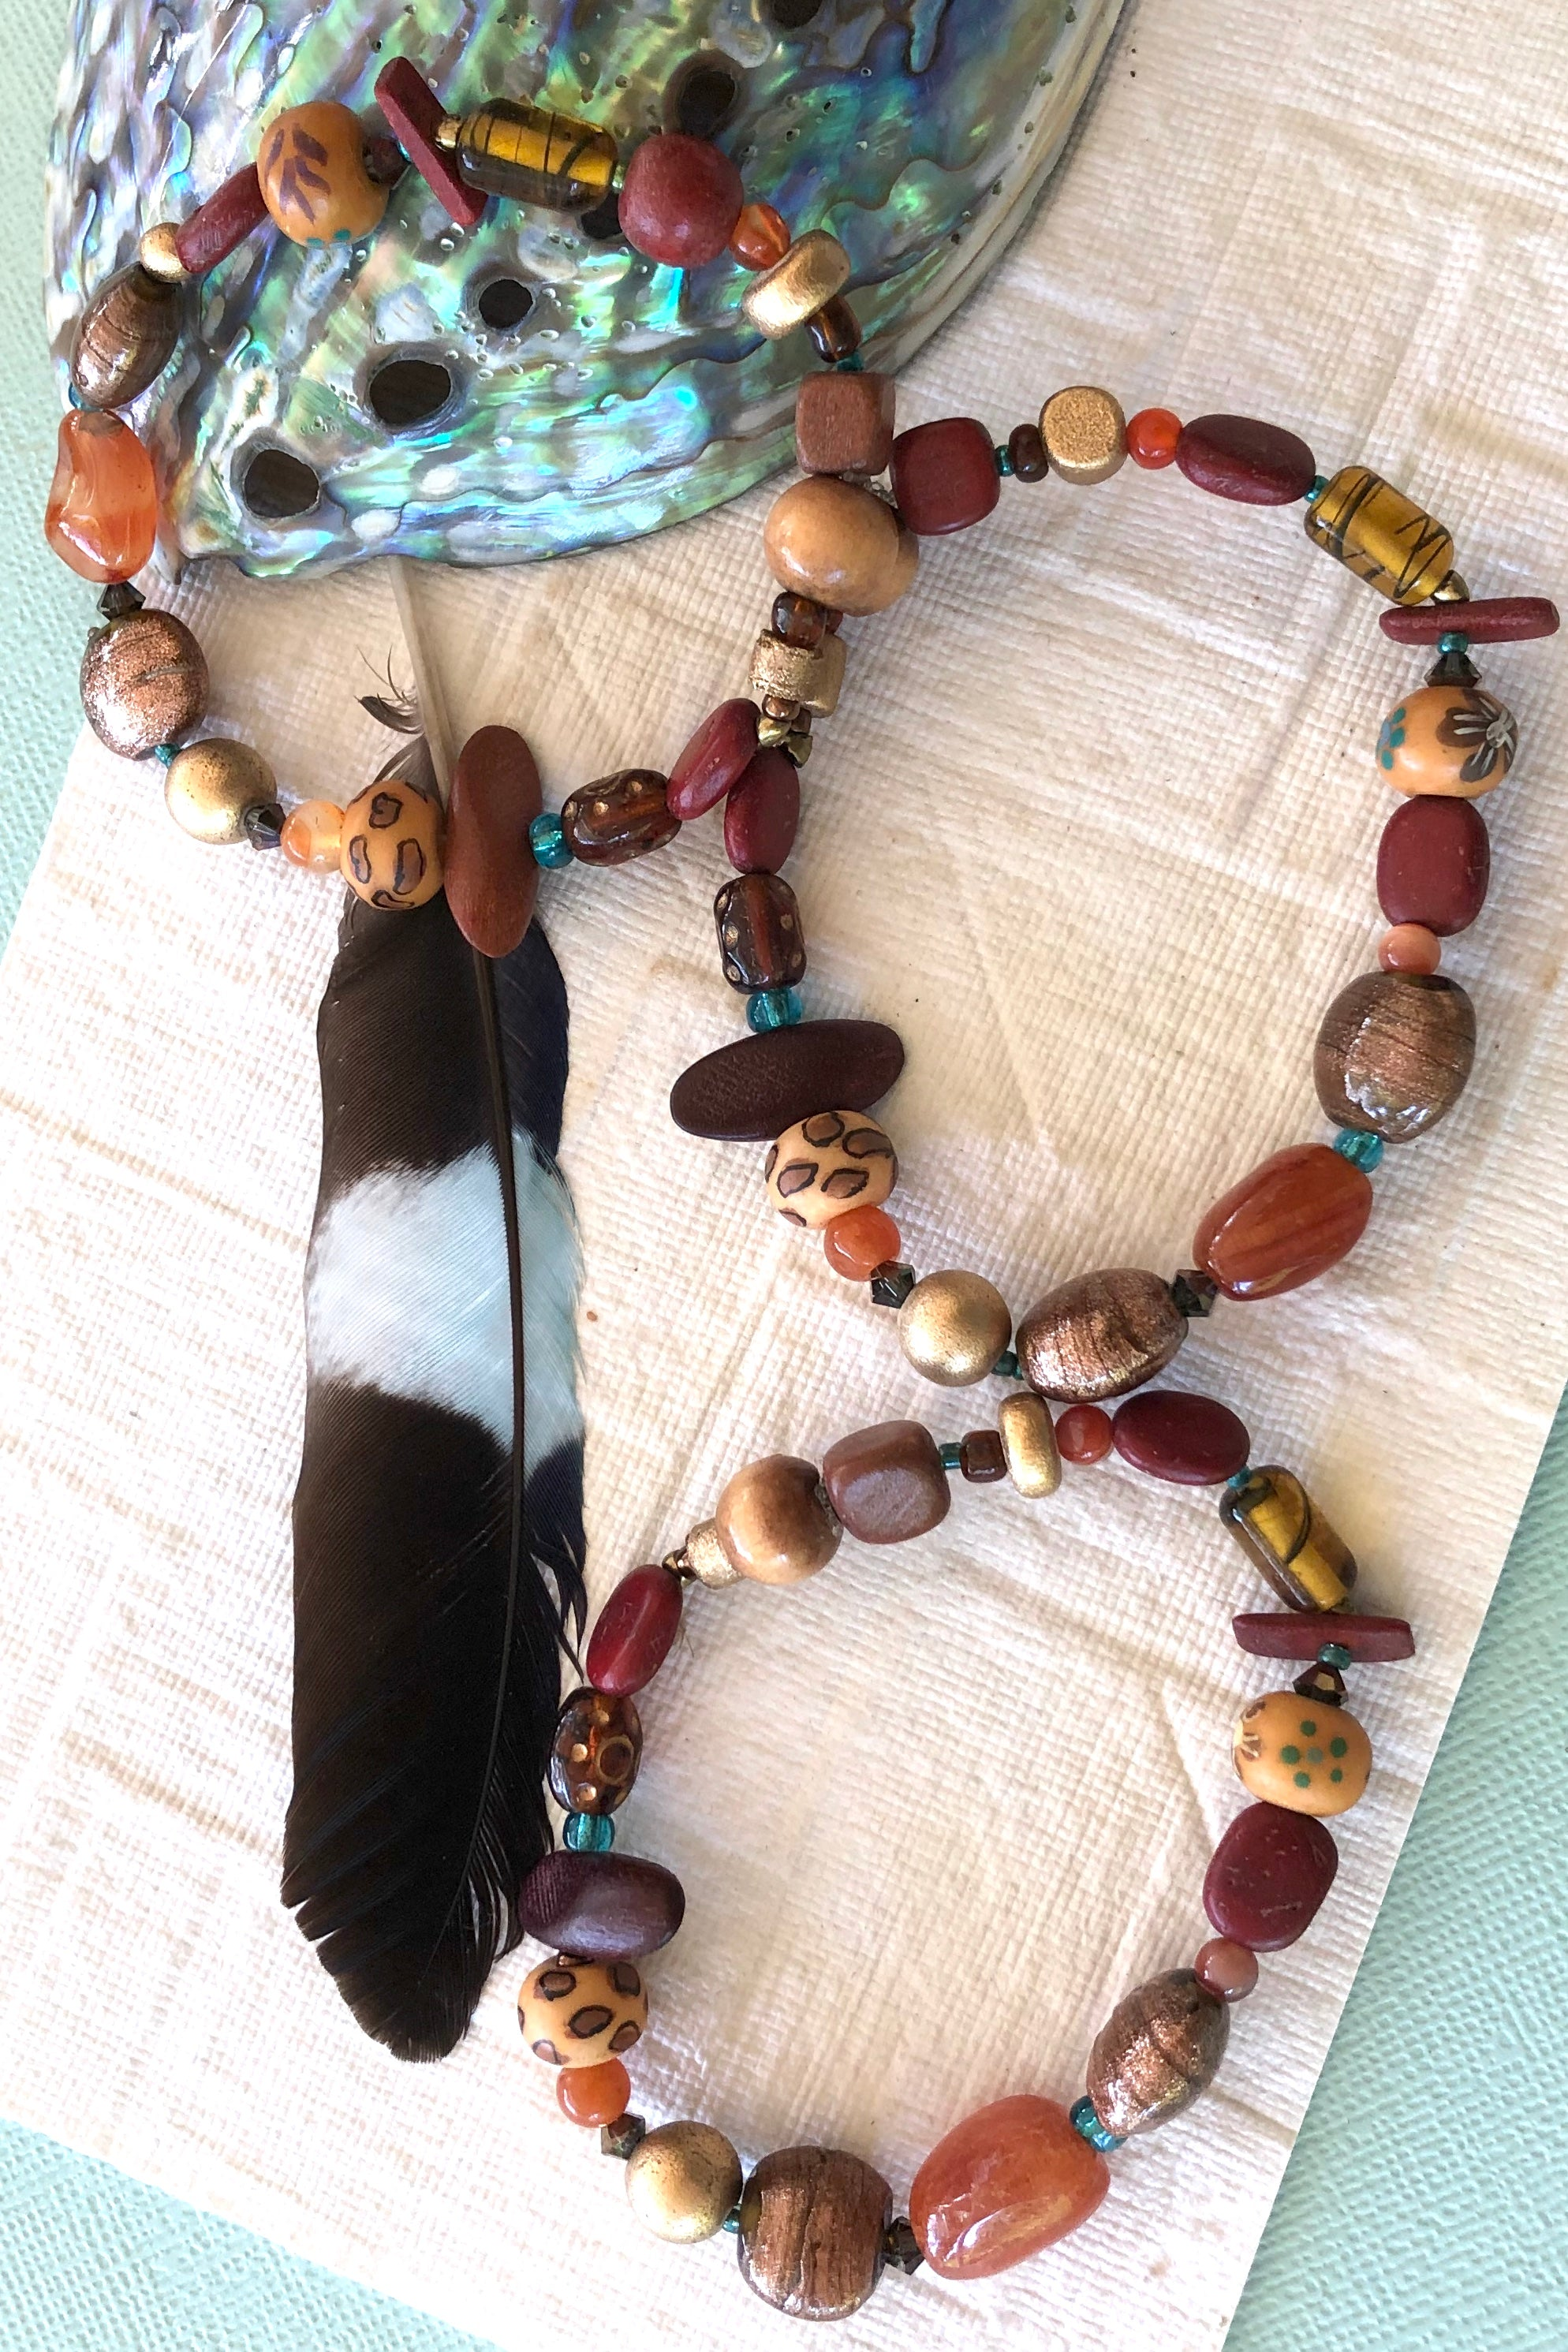 Bracelet Cay Afriki Wood has a powerful and earthy vibe and the beads include antique glass, Carnelian, wood, crystal, glass lamp work beads and hand painted wood beads.